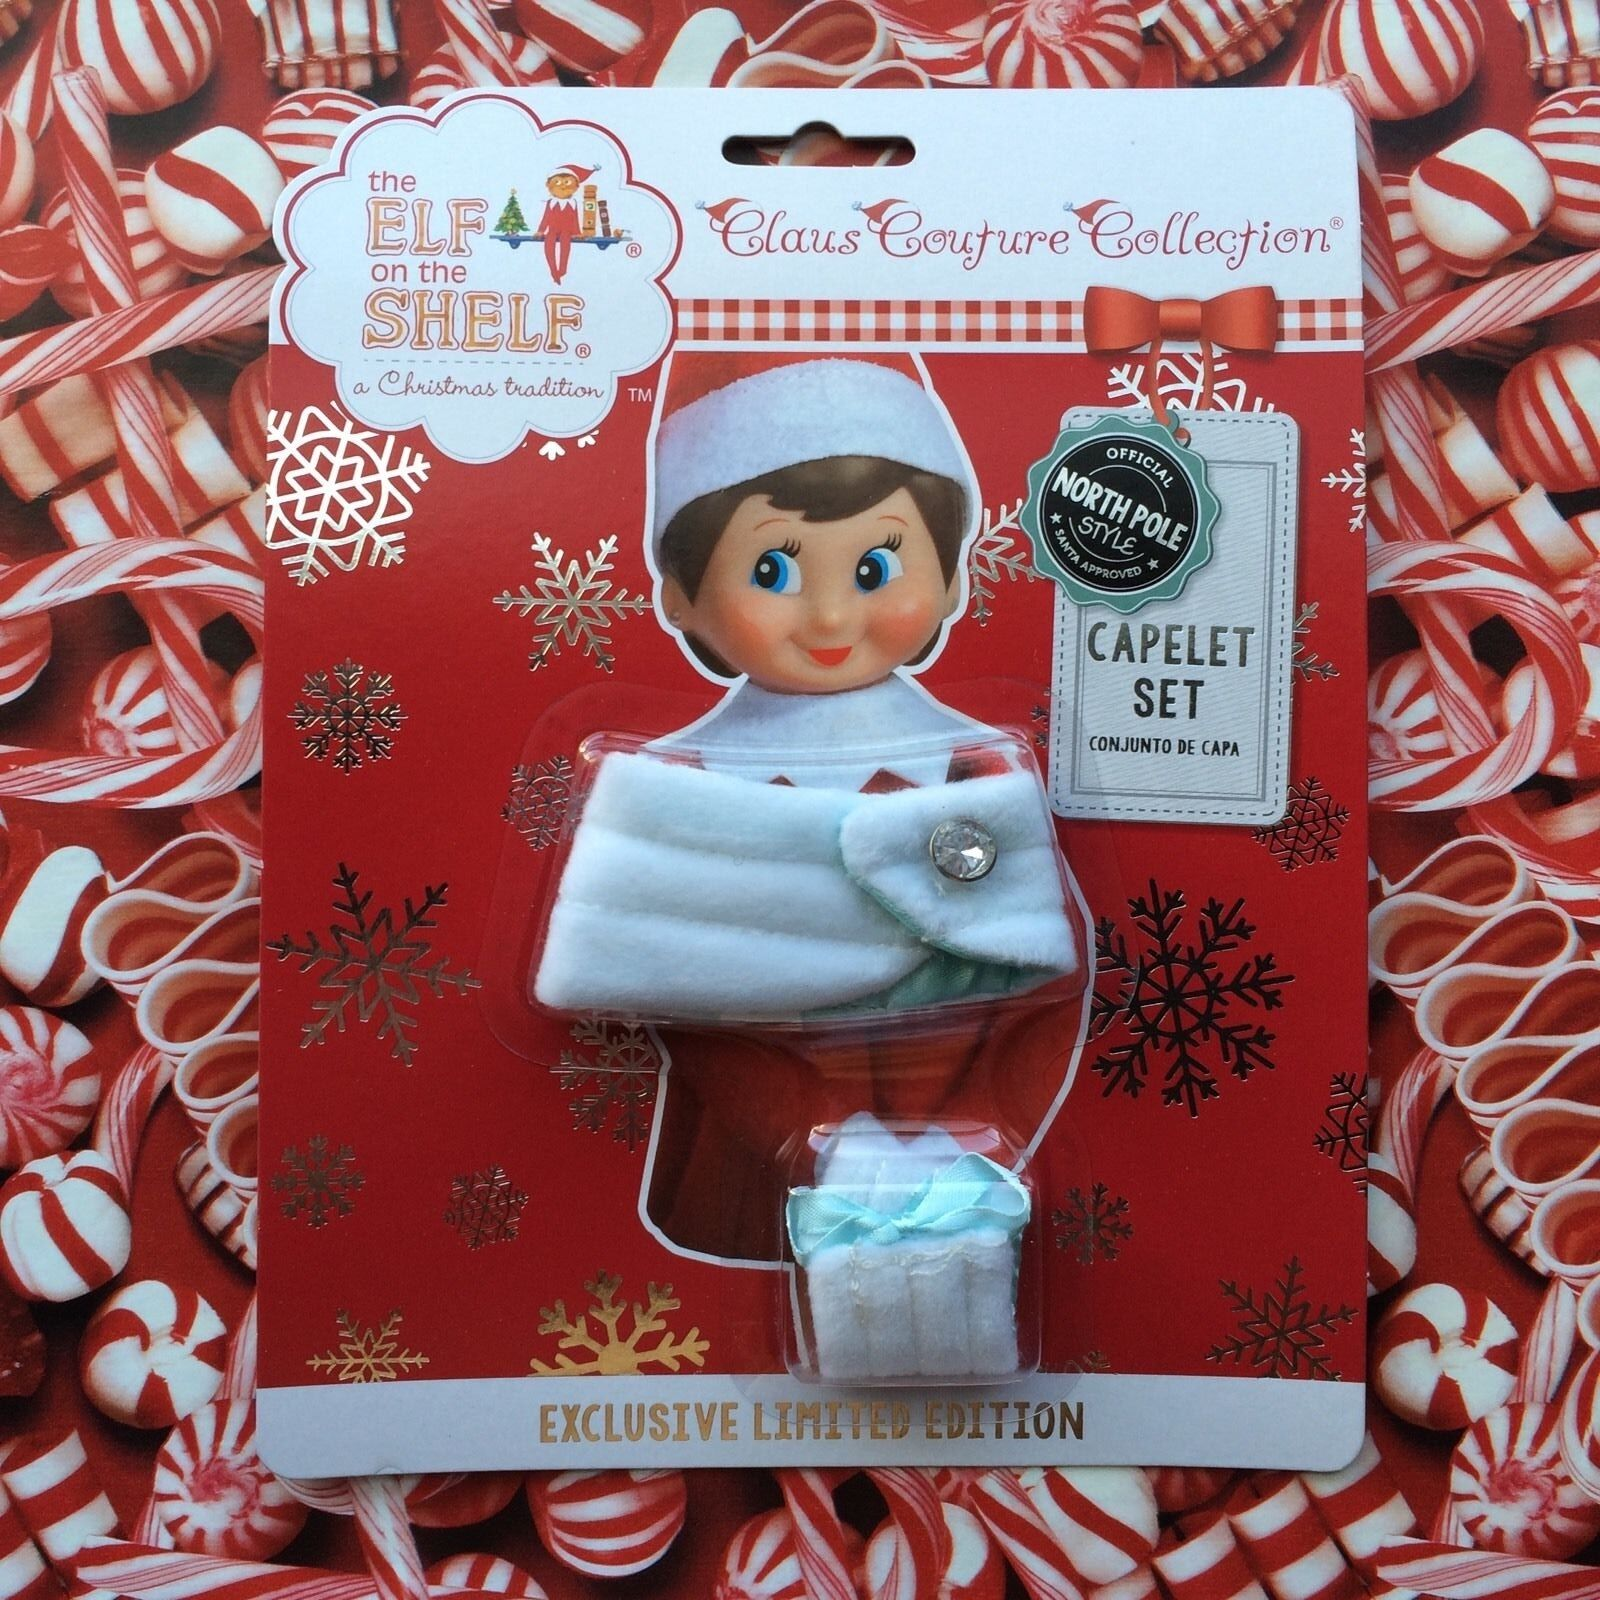 The Elf on the Shelf Clothes